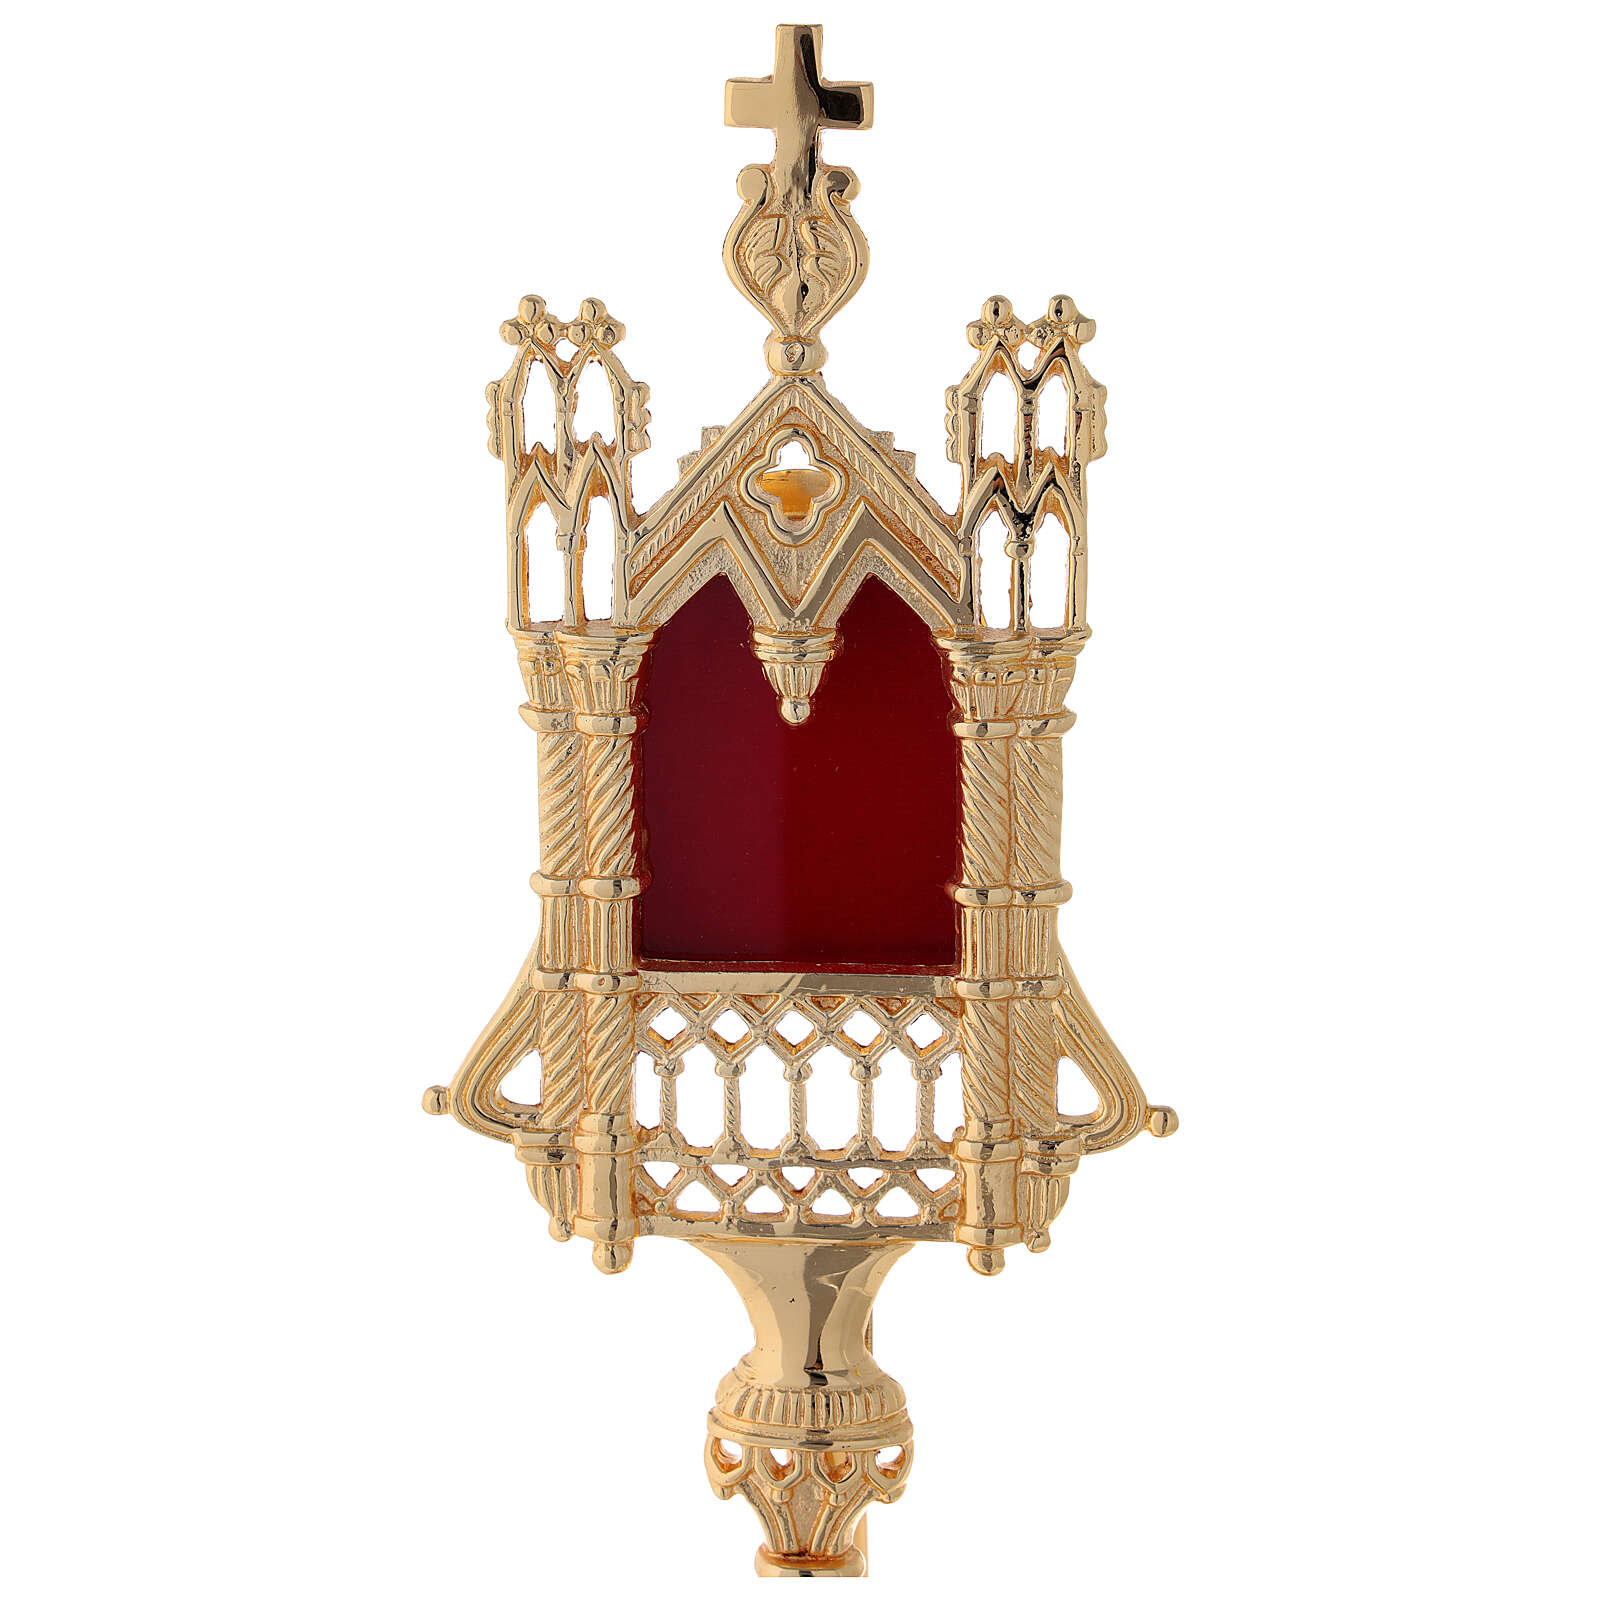 Neogothic reliquary in gold plated brass h 11 in 4